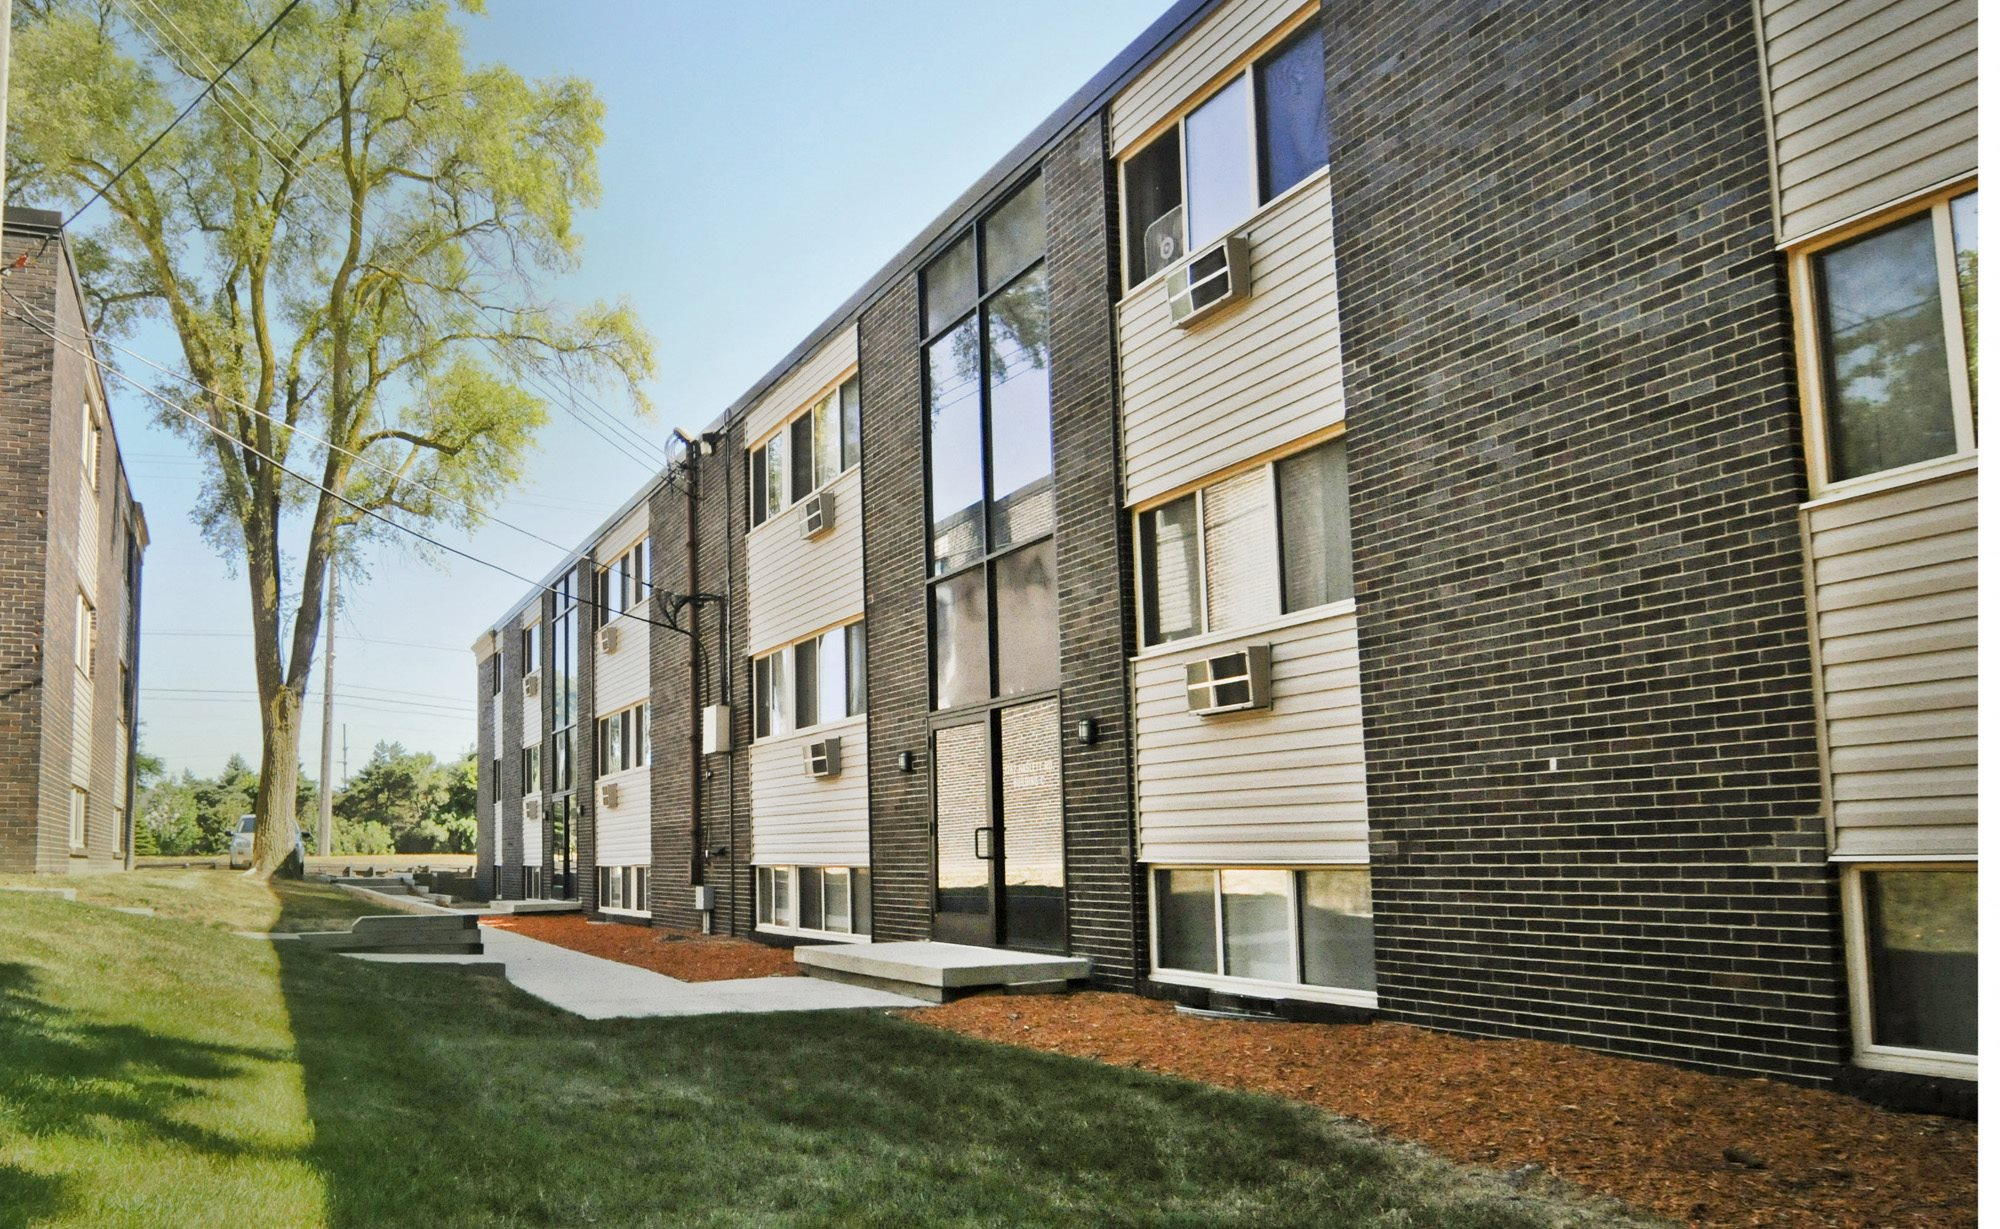 North pointe apartments apartments in east lansing mi - 3 bedroom apartments east lansing mi ...